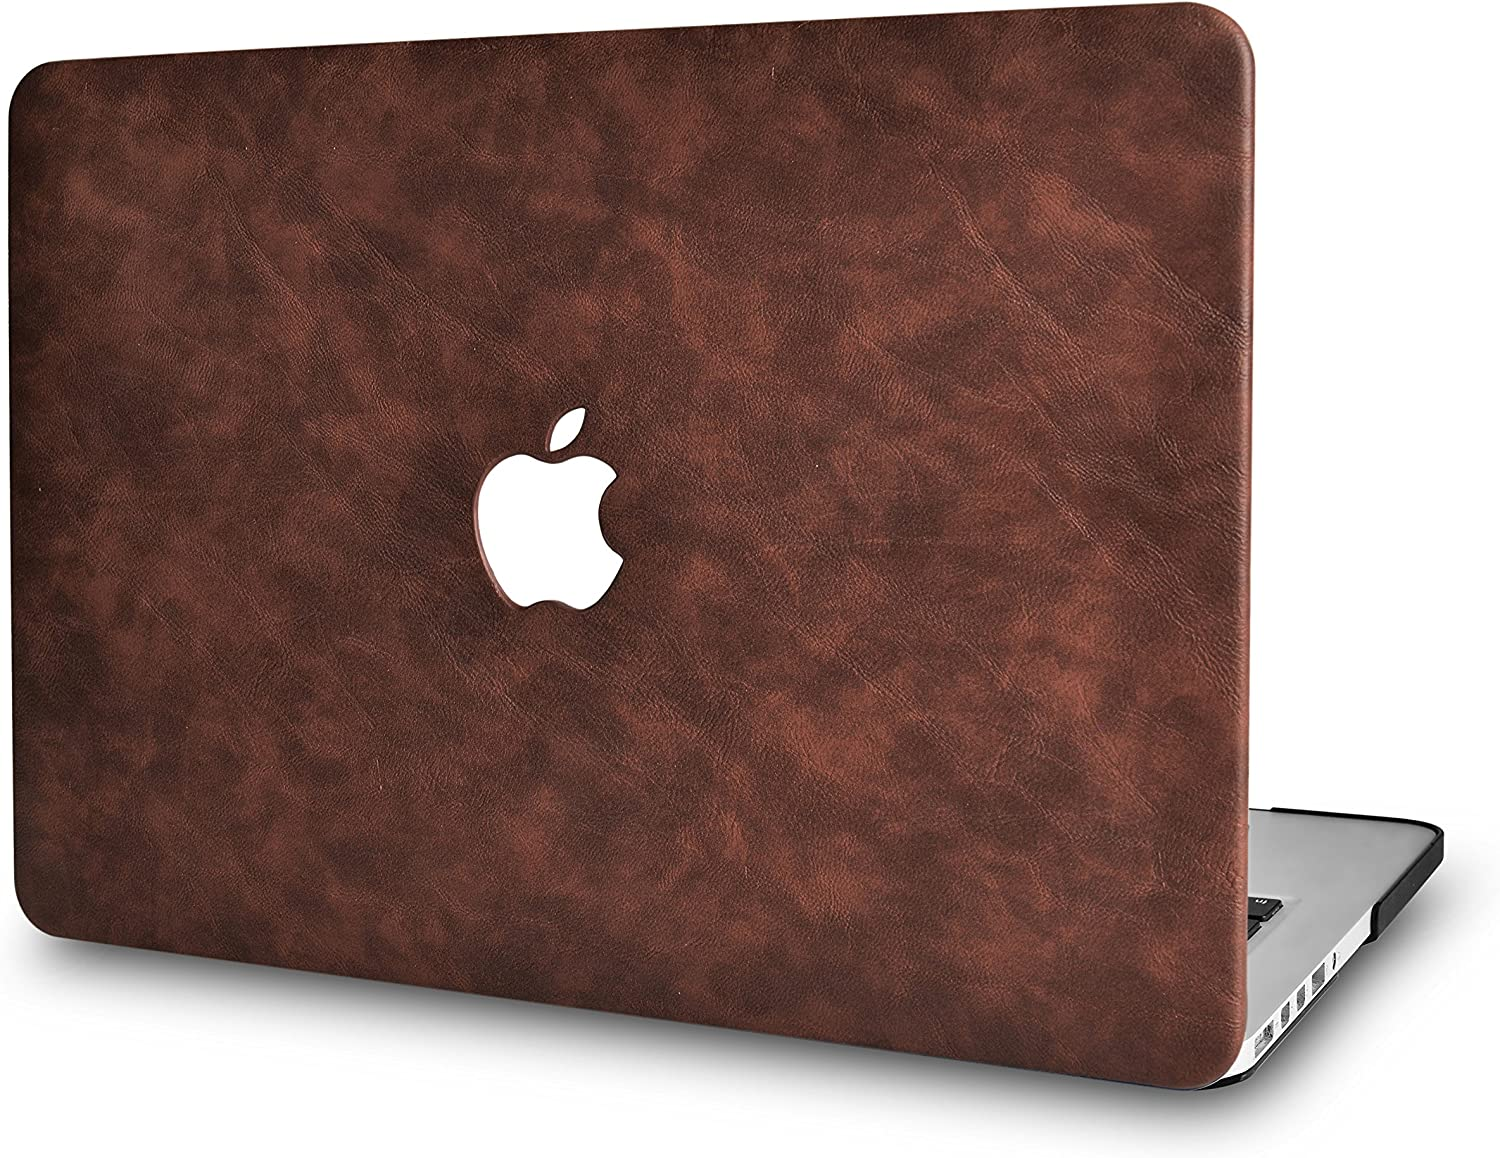 "LuvCase Laptop Case for MacBook Pro 15"" Retina Display (2015/2014/2013/2012 Release) A1398 (NO CD Drive) Leather Hard Shell Cover (Brown Cow Leather)"